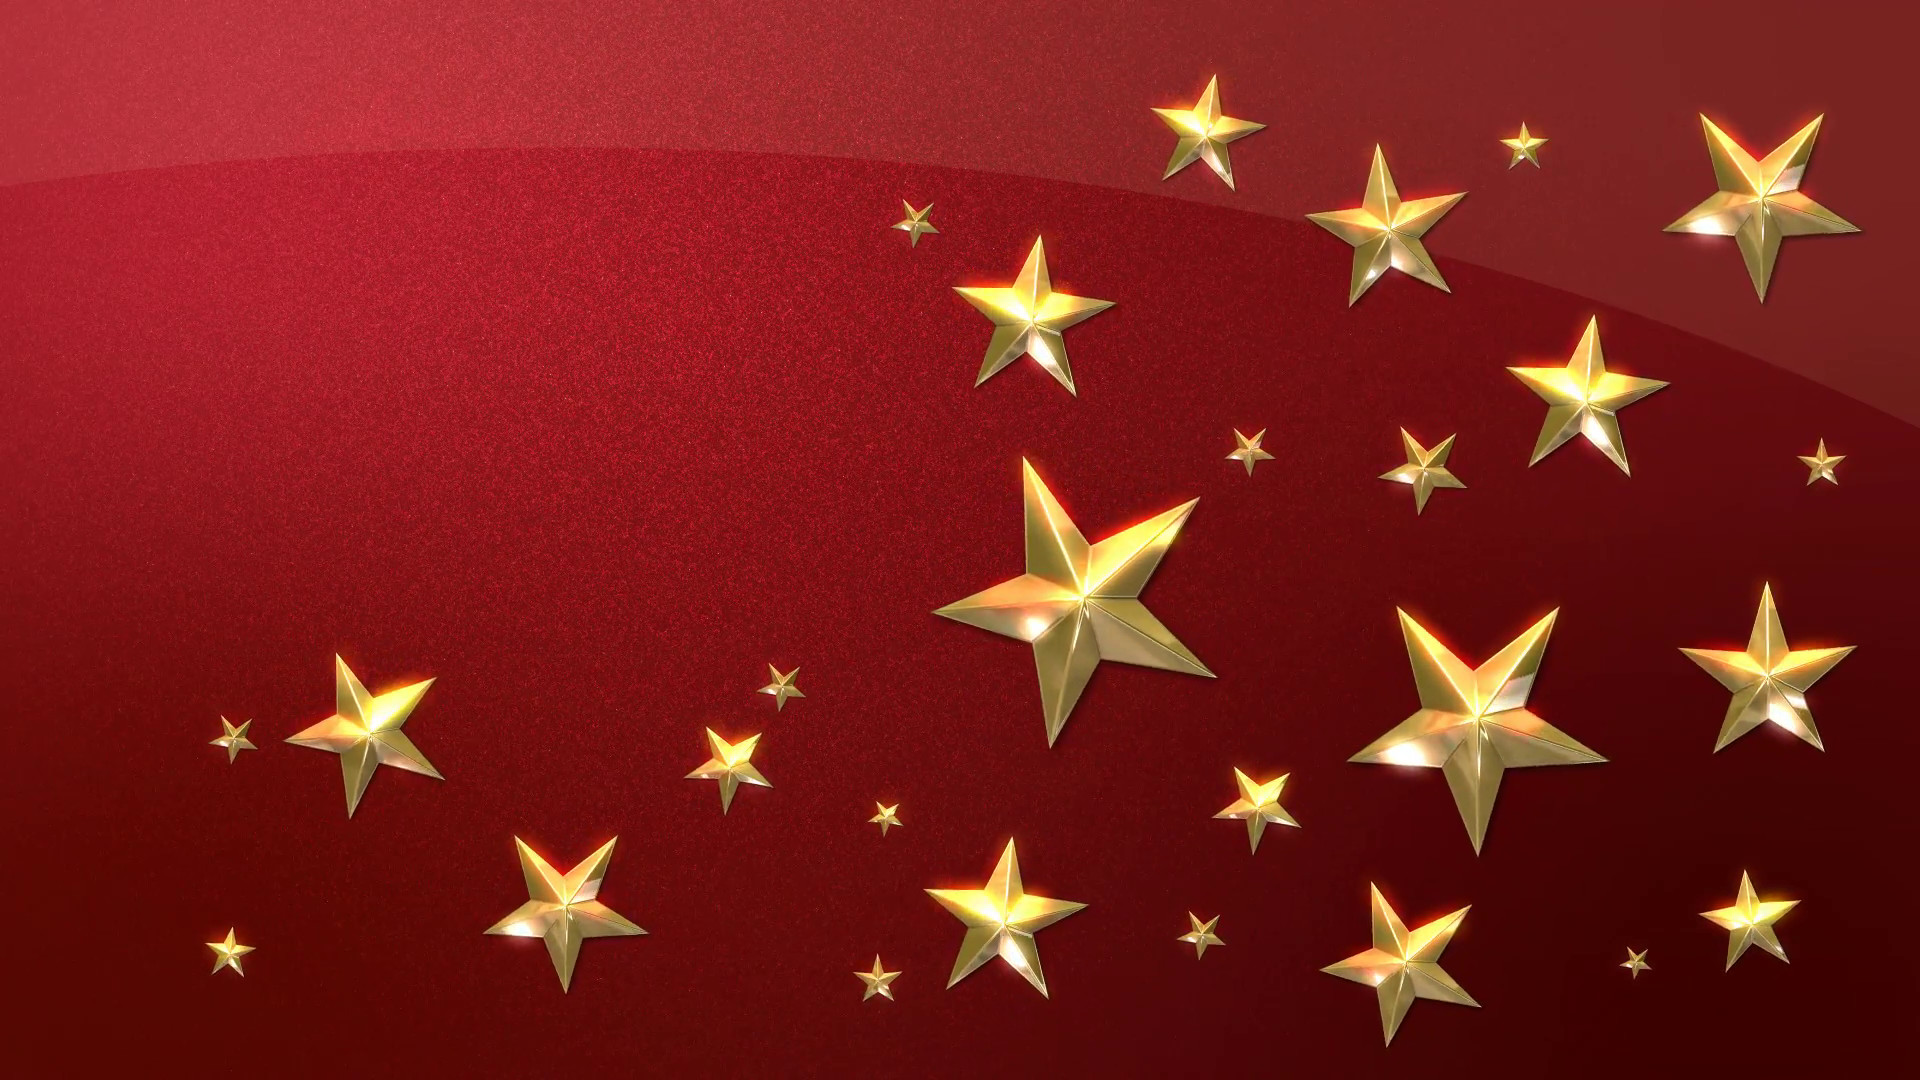 Subscription Library Looping Animation of Festive Gold Stars on a Sparkling  Red Background